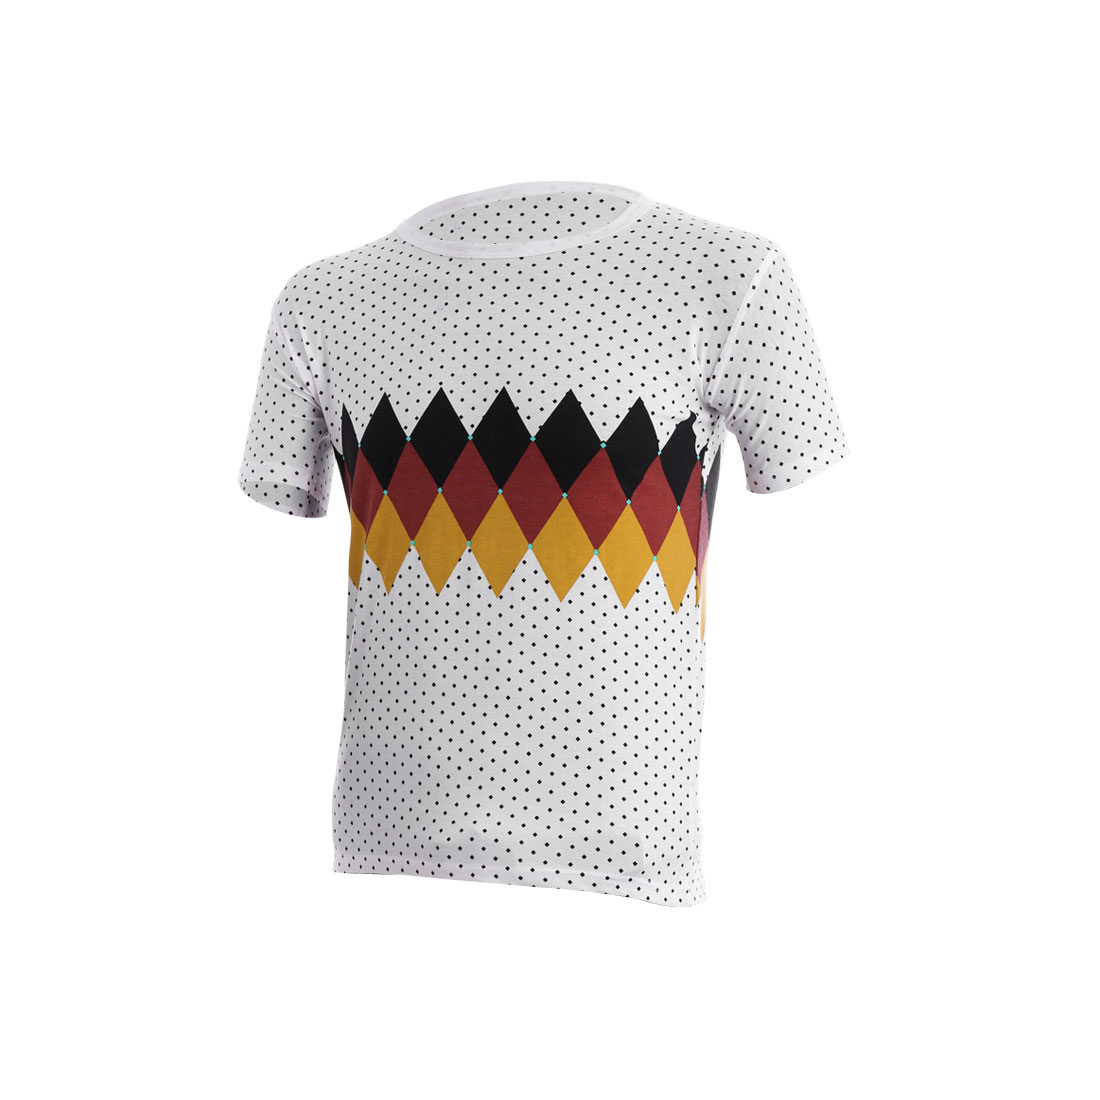 Men Close-fitting Casual Argyle Prints Short Sleeve White Tee Shirt S